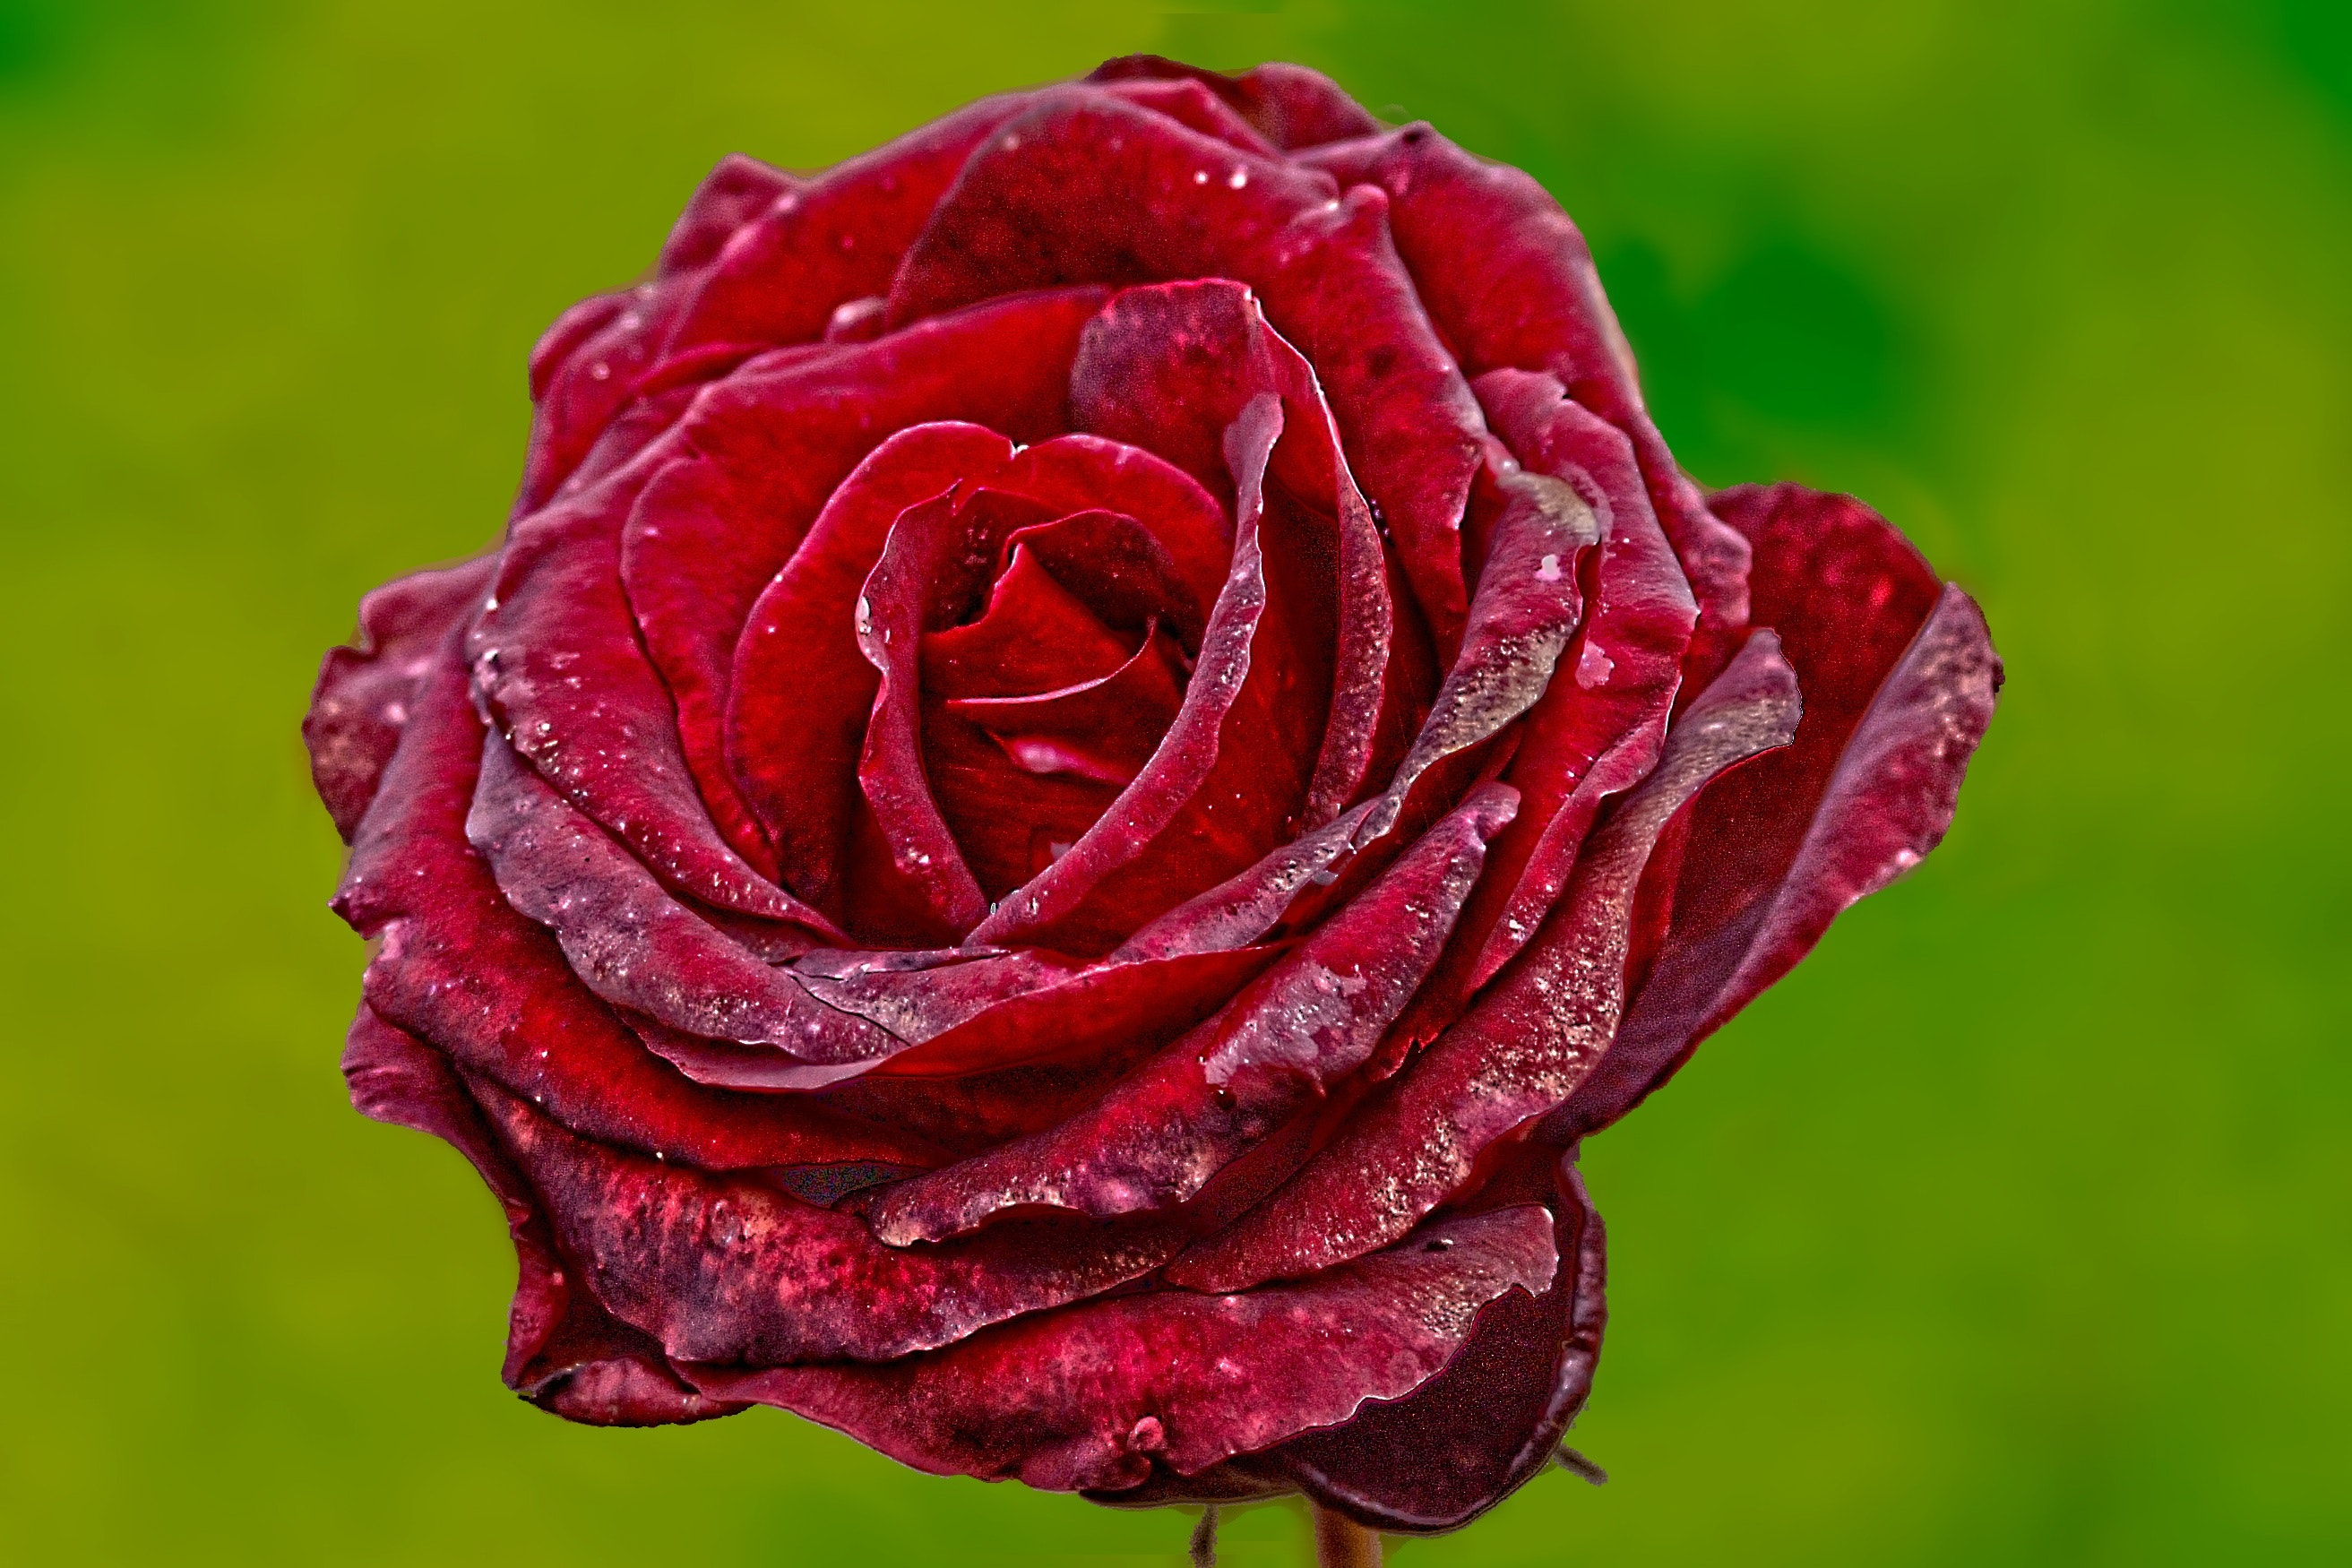 Rose Flower Images Hd Wallpaper Free Download